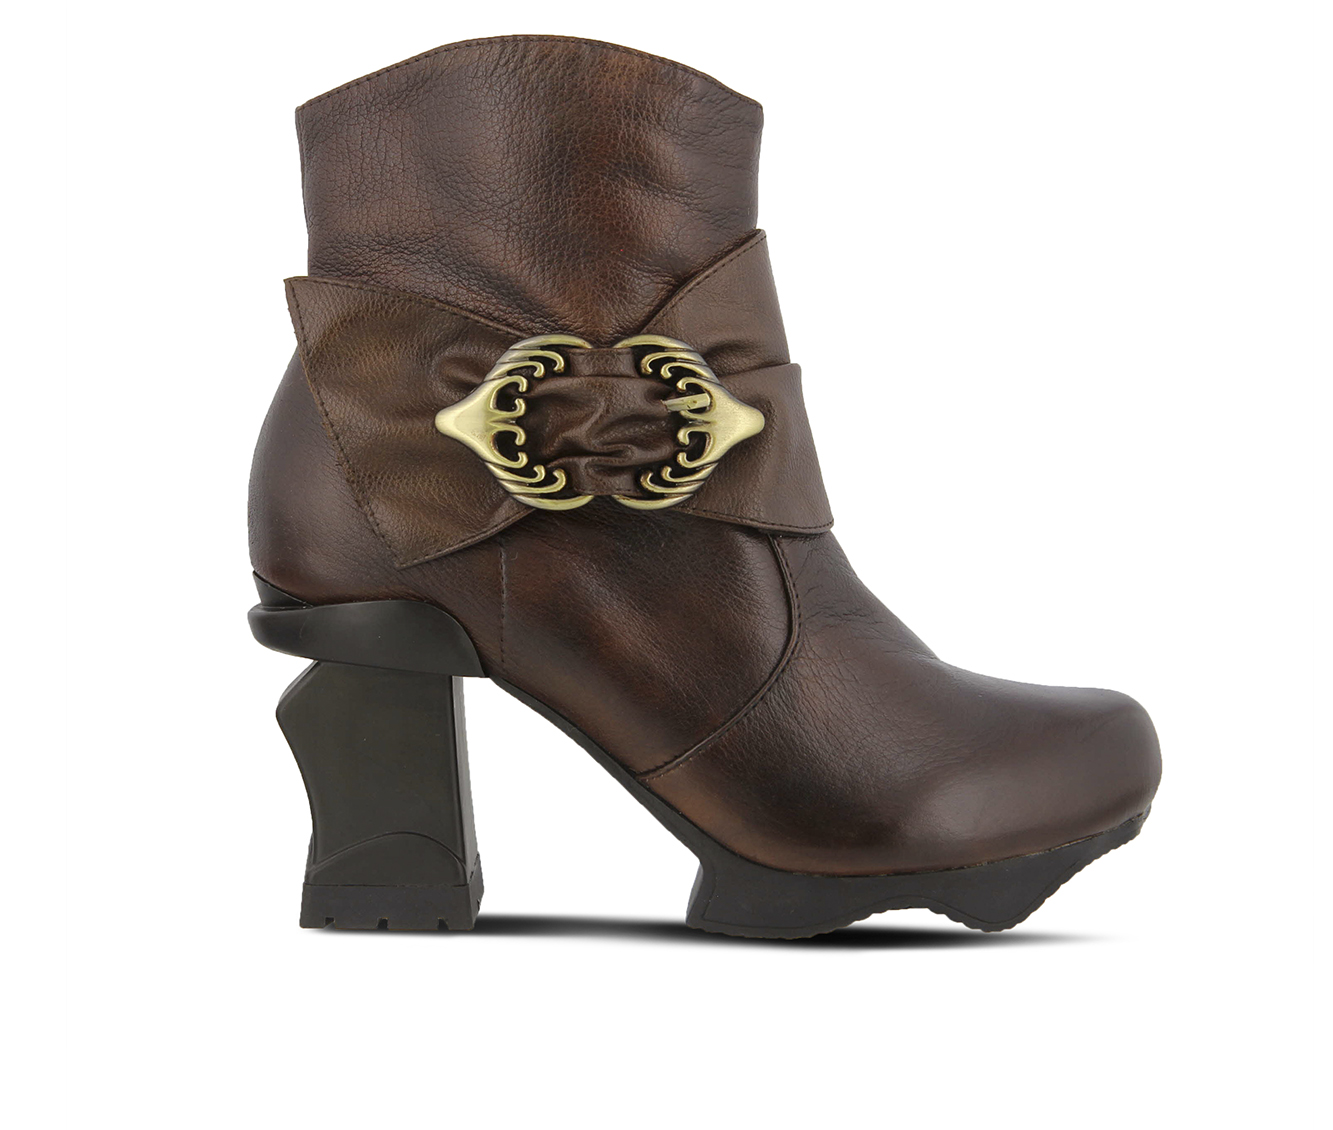 L'Artiste Natia Women's Boots (Brown Leather)